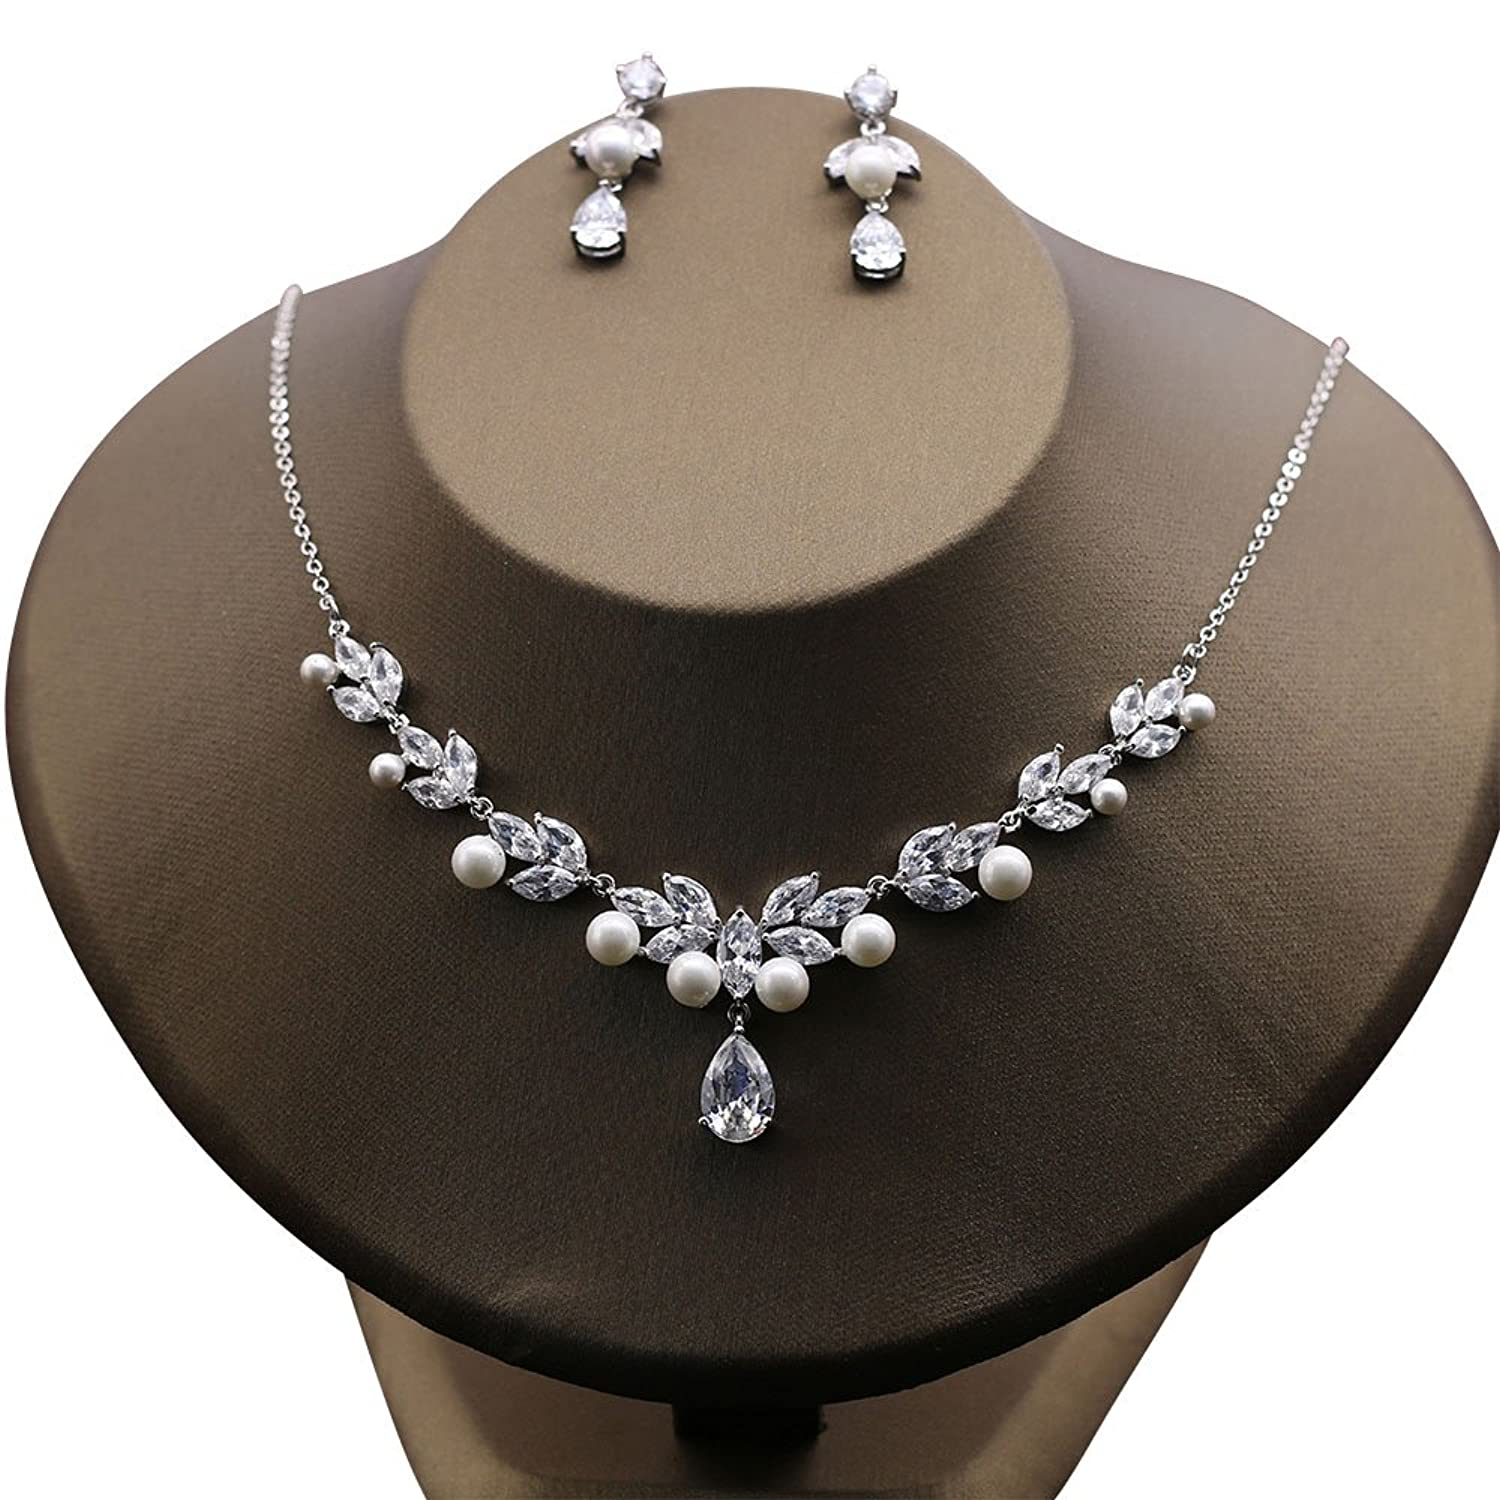 Kanrome Charming Necklace Choker with Earrings Cubic Zirconia Jewelry Sets